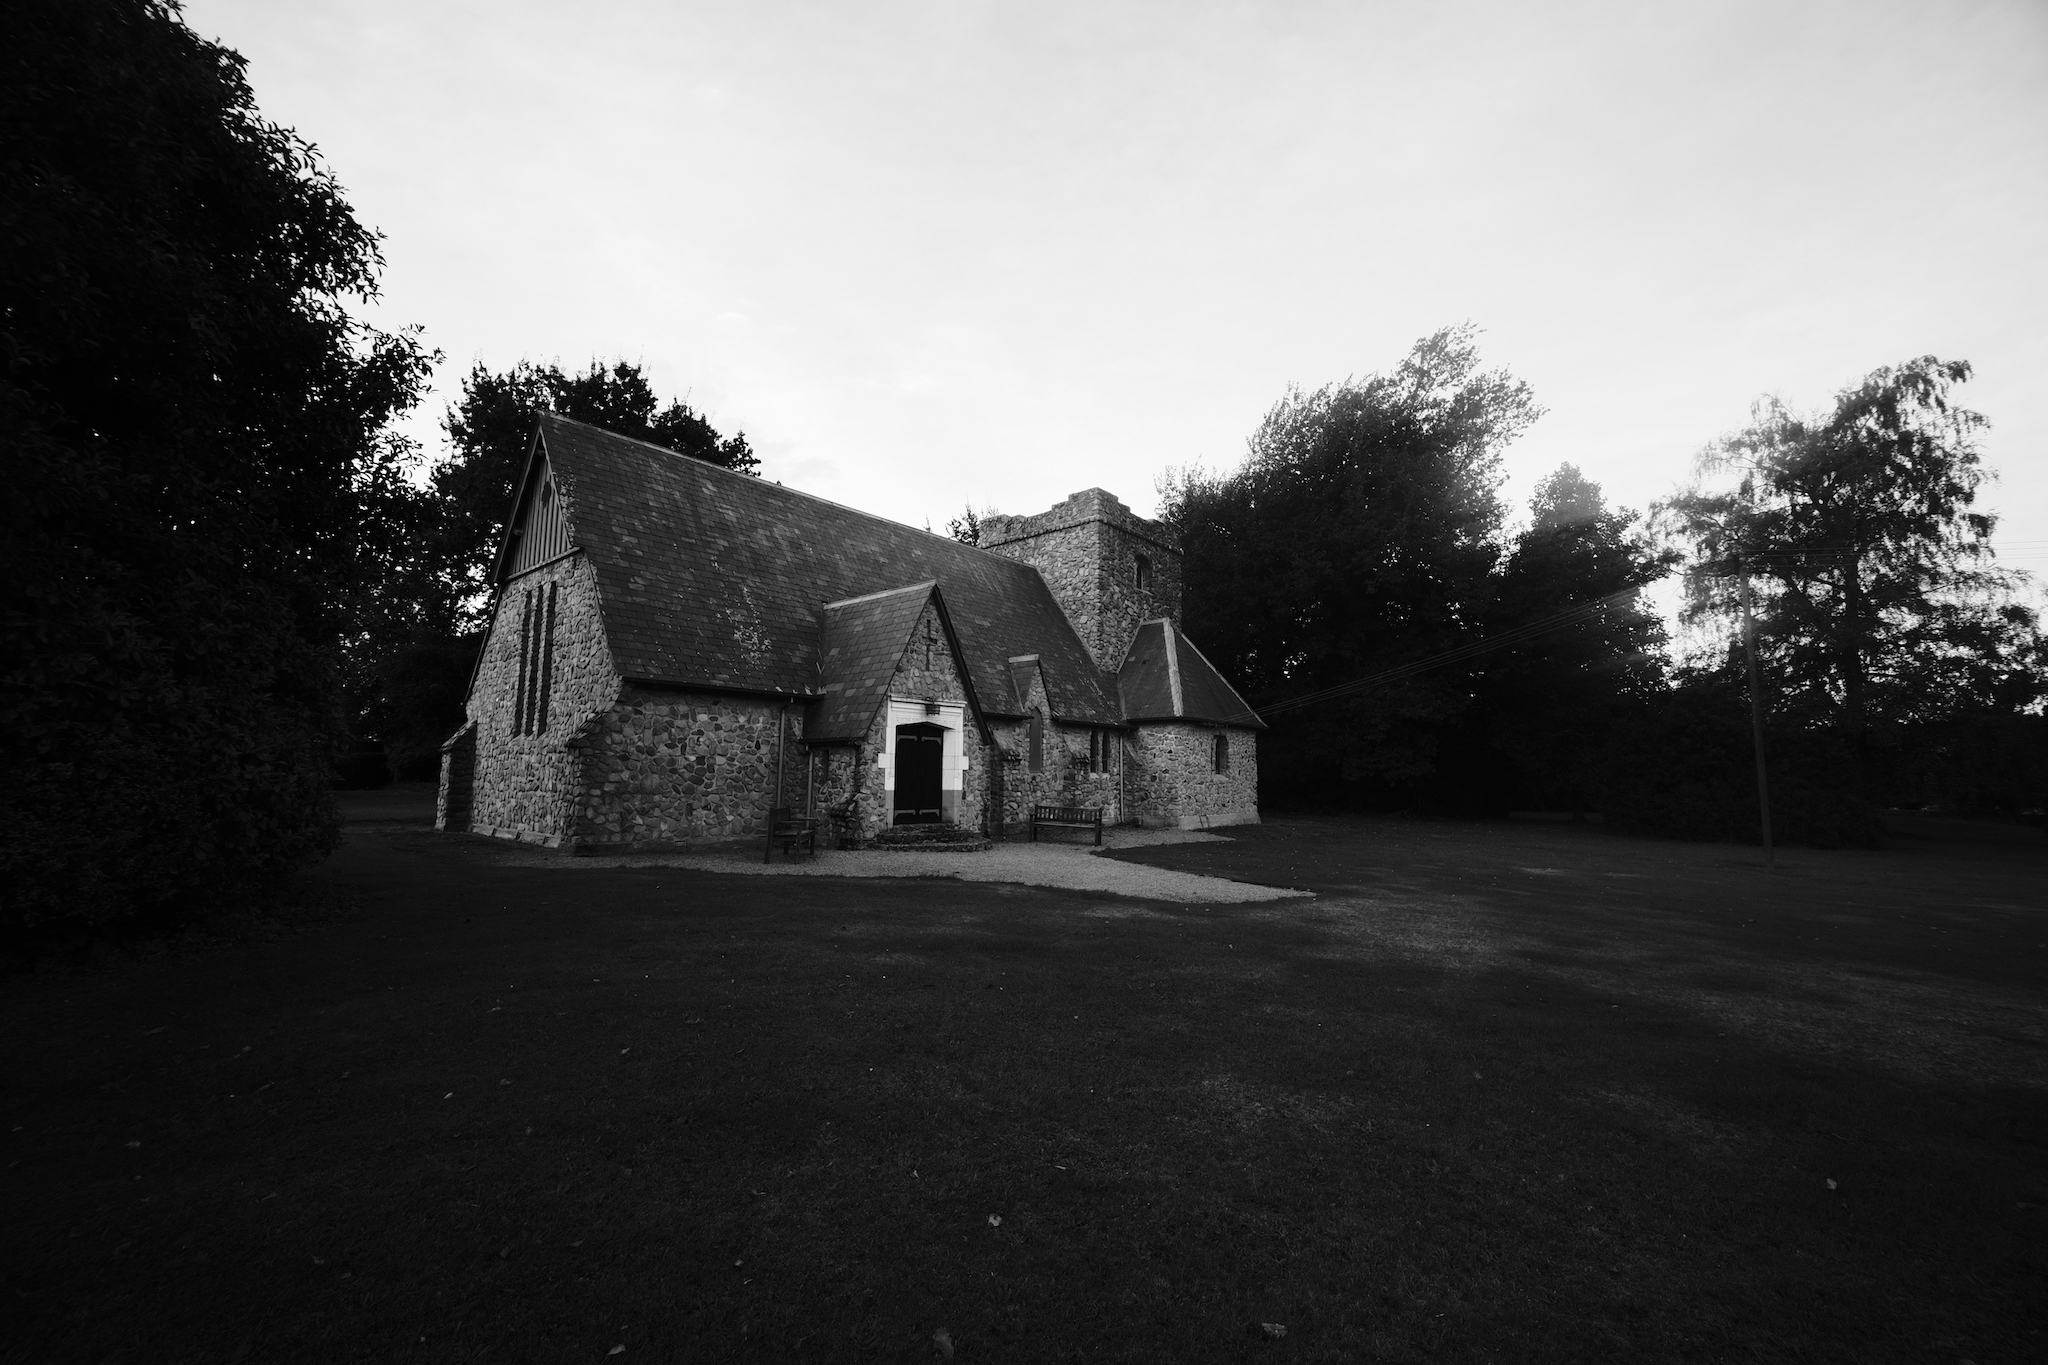 St Thomas / Tripp Church, Woodbury